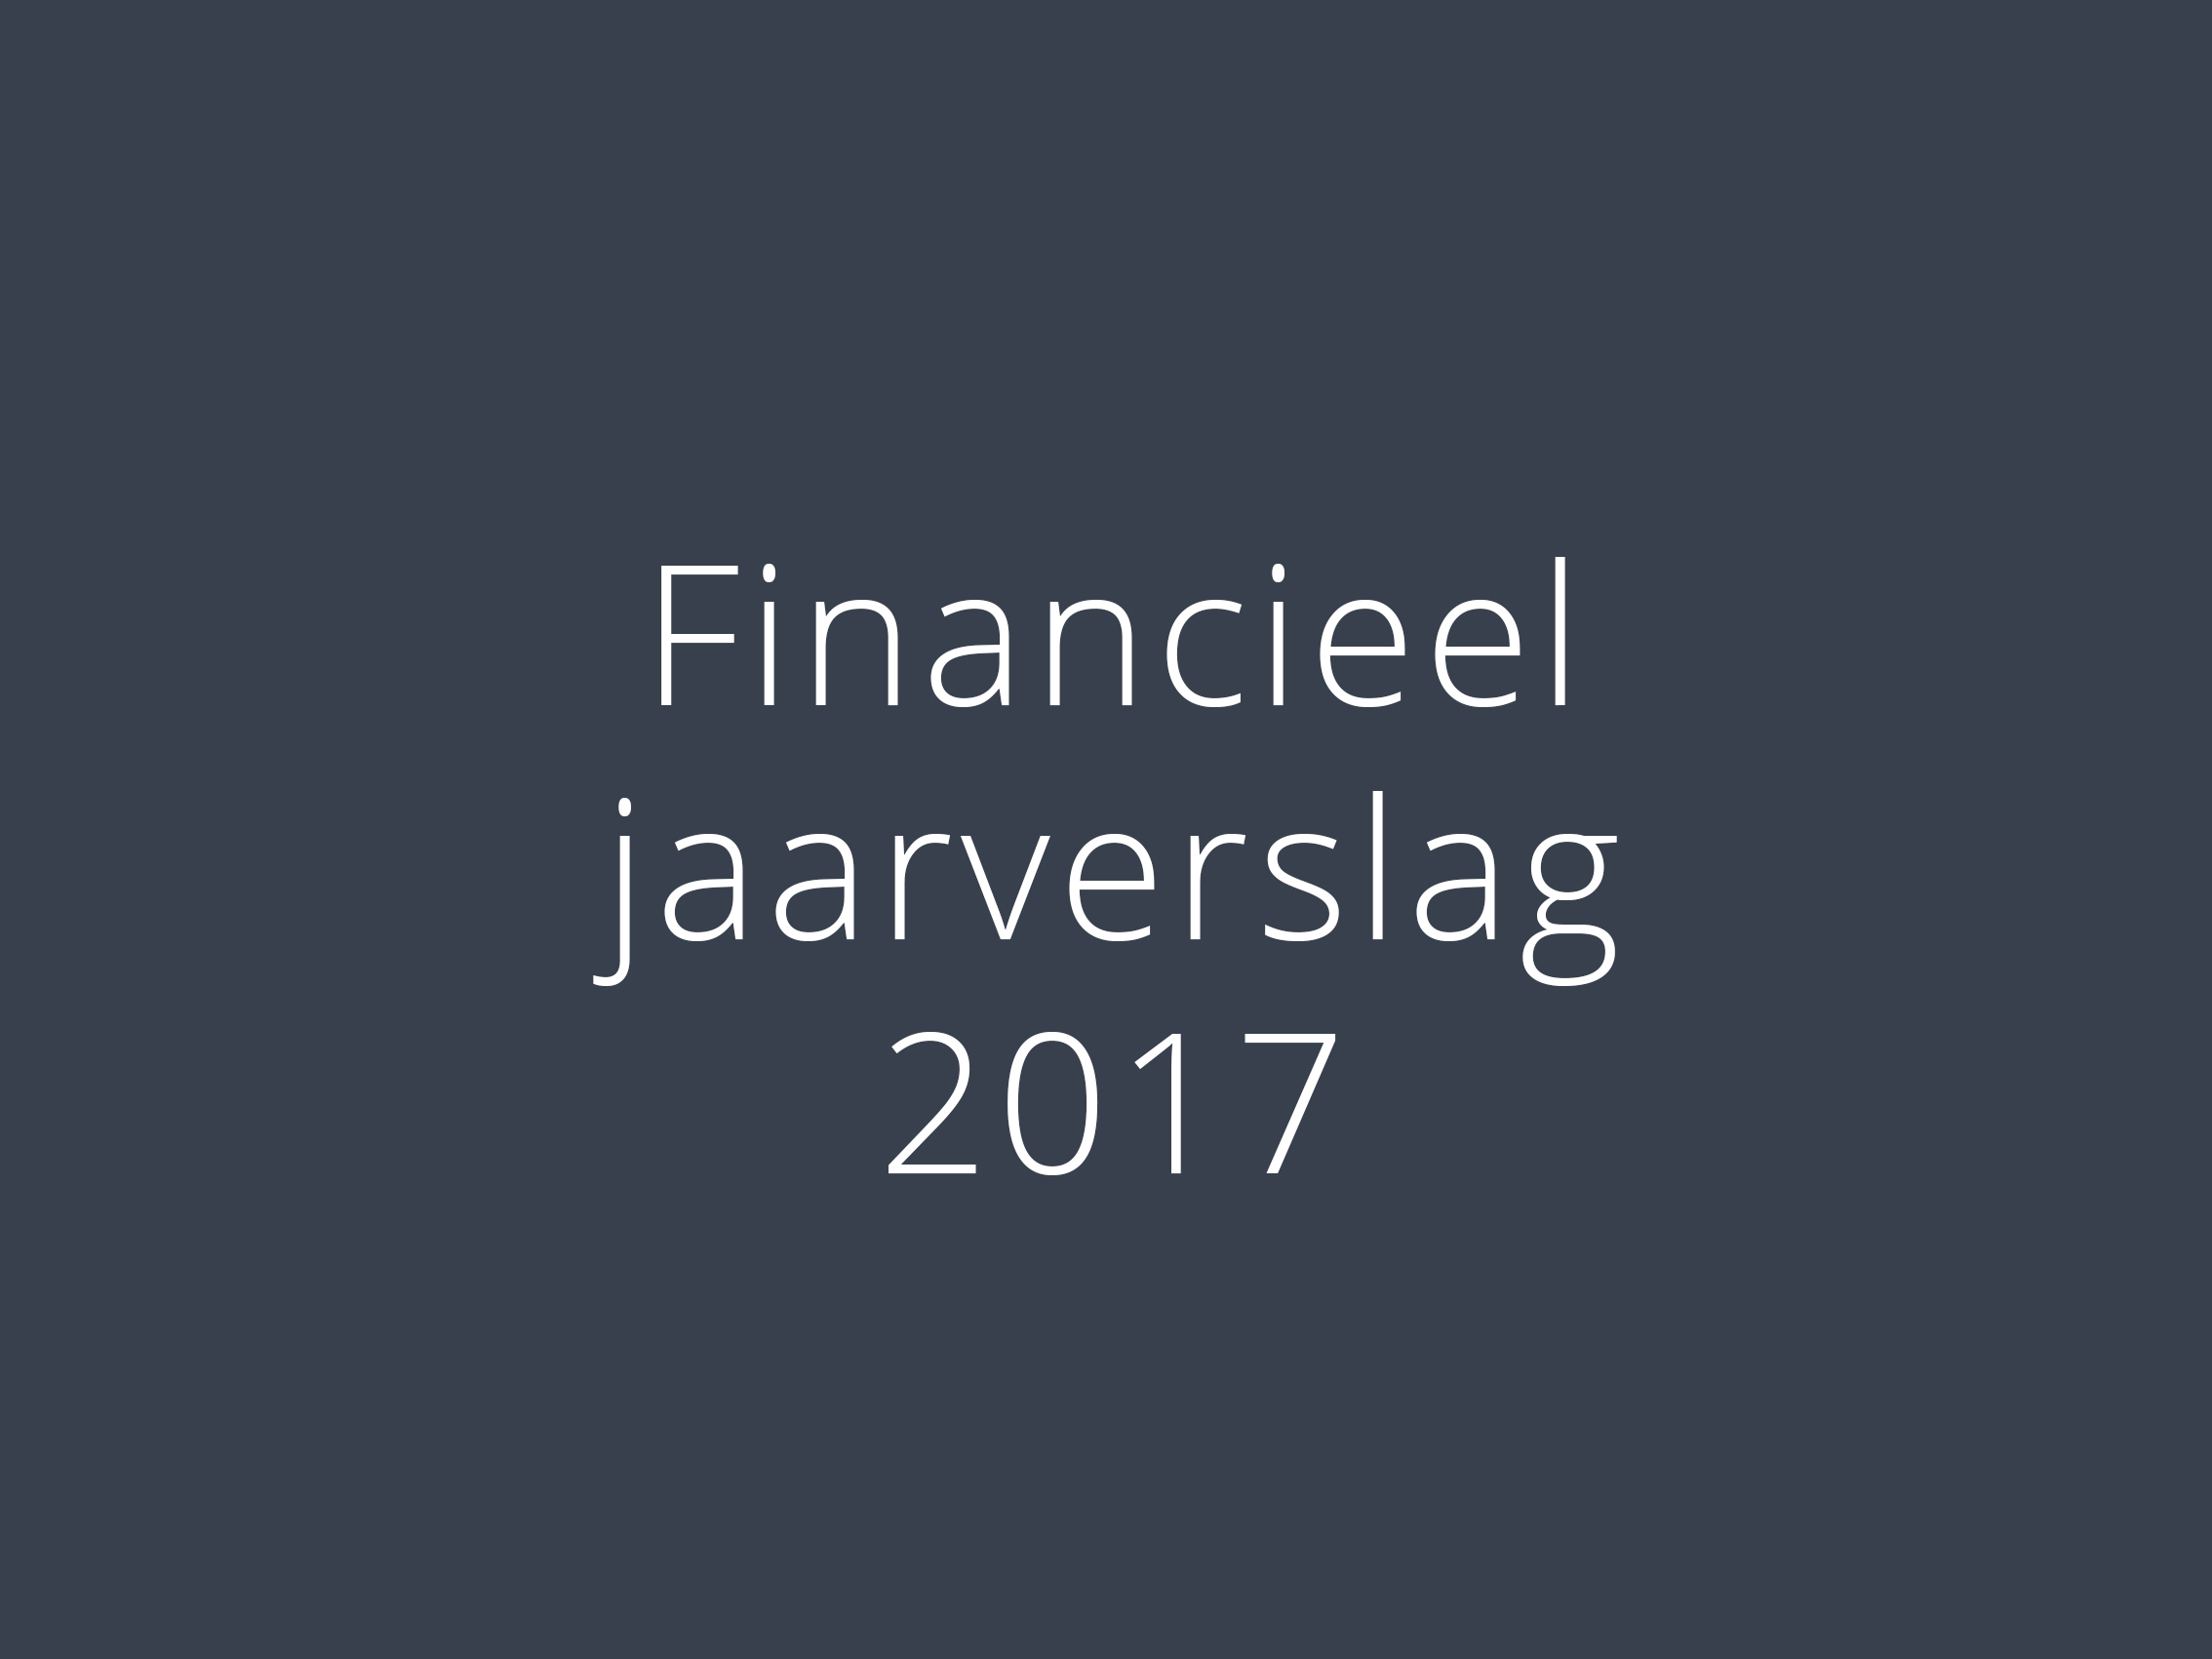 financieel jaarverslag 2017